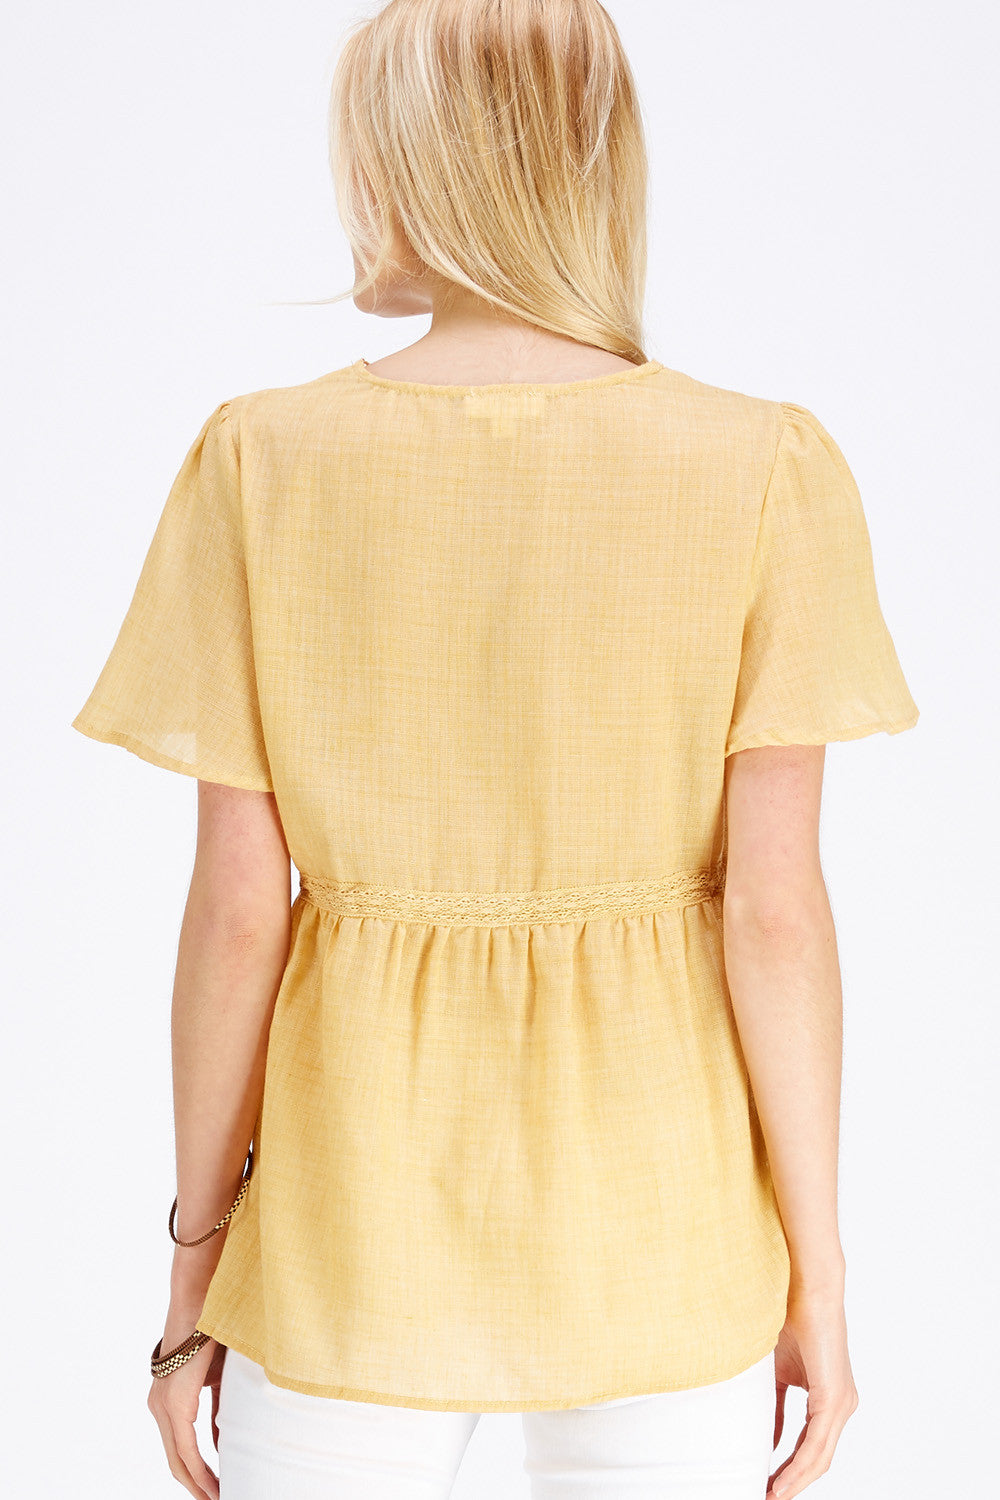 Tony Blouse - Light Mustard